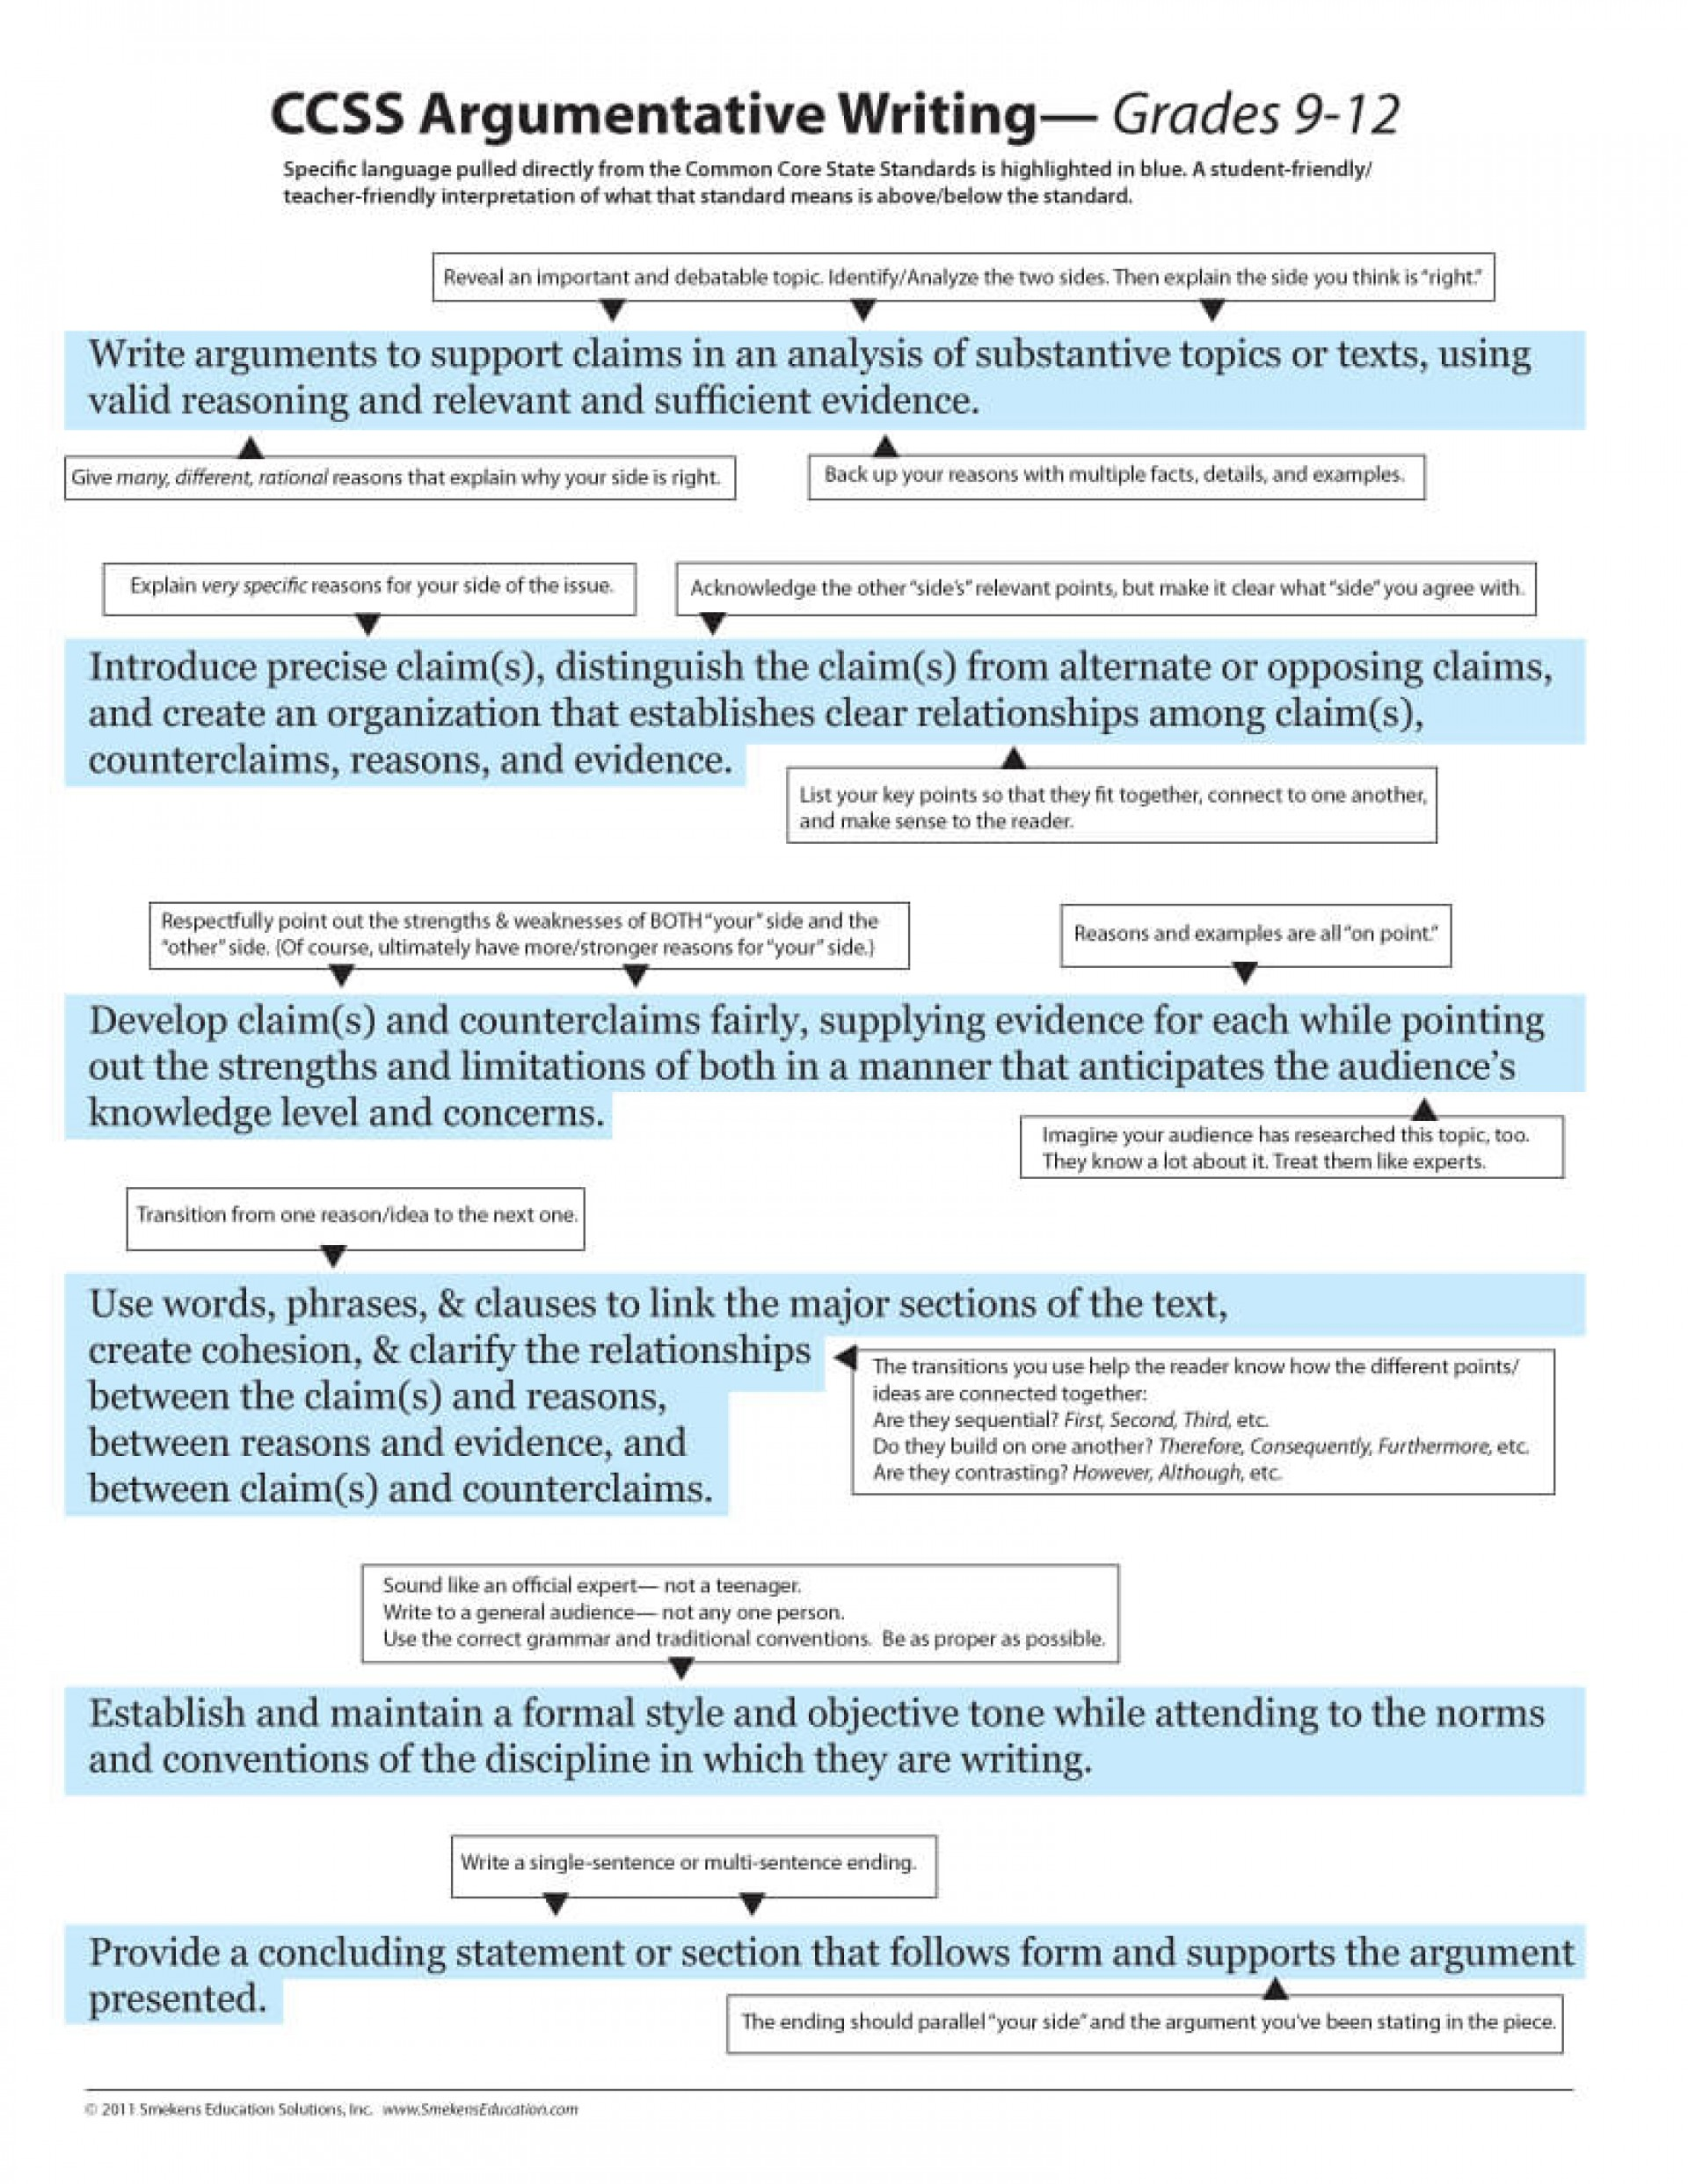 011 Essay Example Ccss Grade 9 12o How To Write Claim For An Frightening A Argumentative Good Rebuttal In 1920